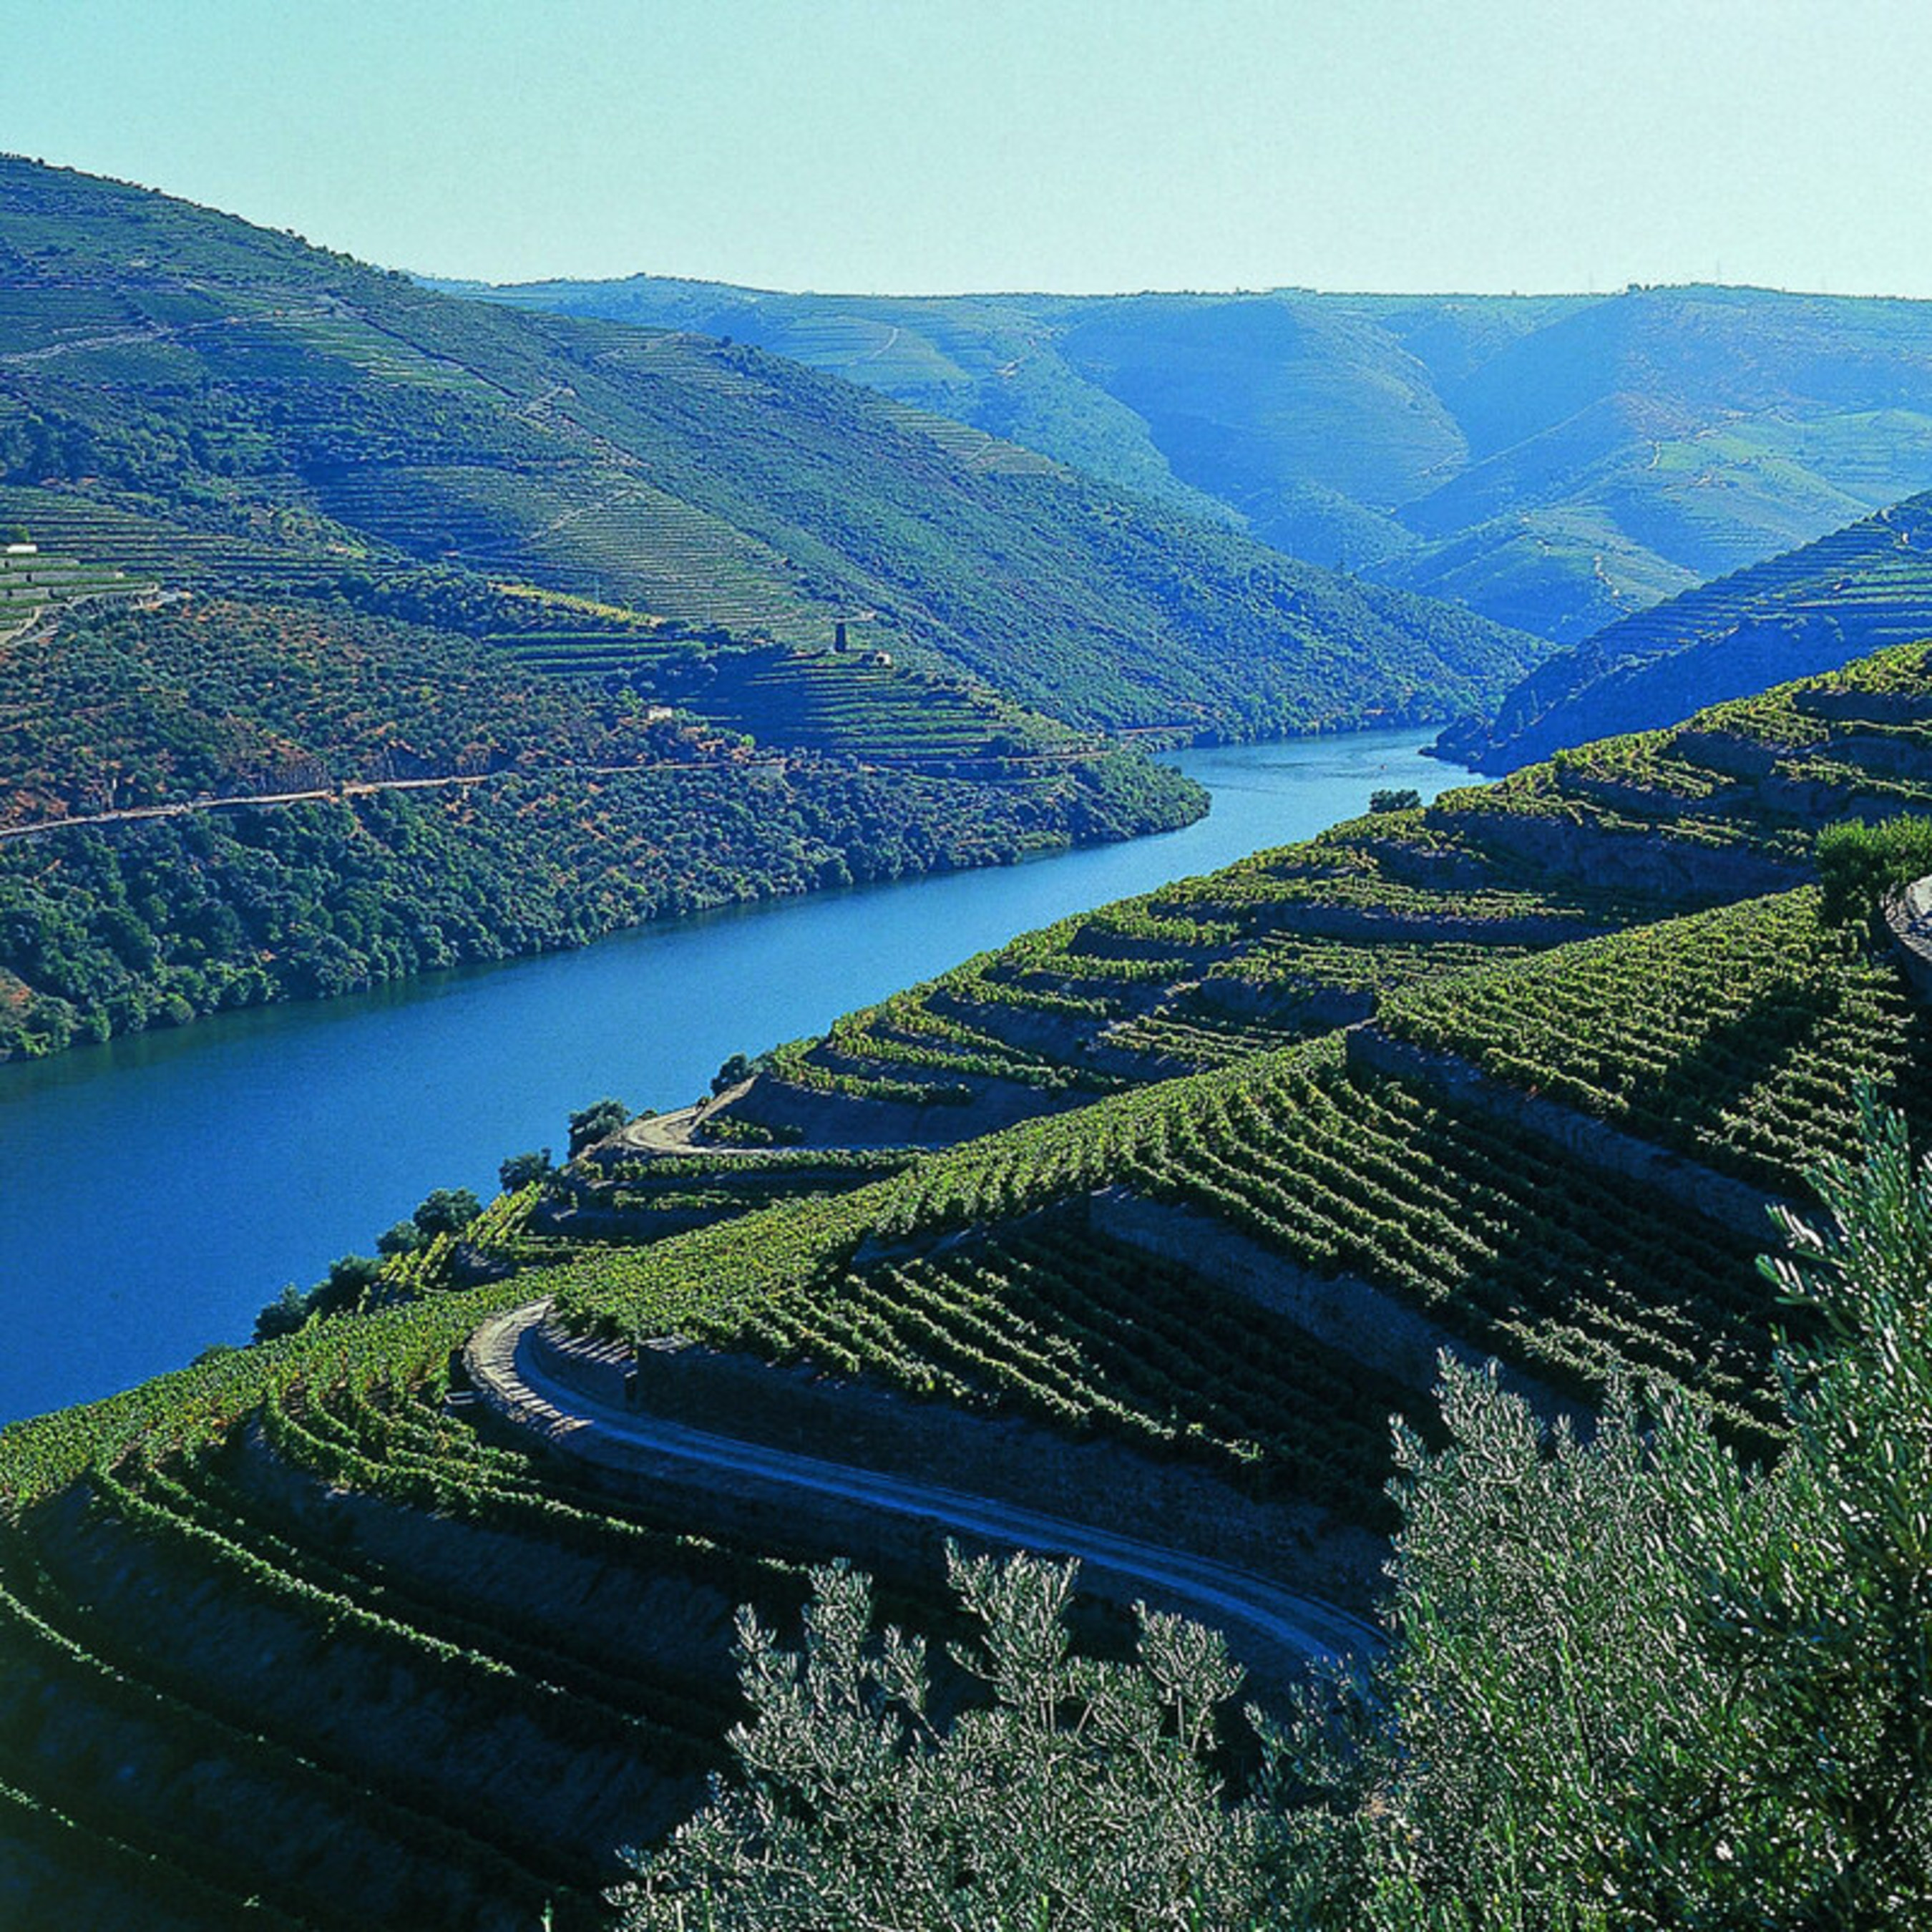 One of the most beautiful motorcycle rides in Europe runs through the Douro Valley and along the Douro River in Northern Portugal. Through vineyards, beautiful villages and in the company of the best hotels and restaurants in the country. Join Allan Karl on an exclusive motorcycle and culinary and culture tour of this remote region.